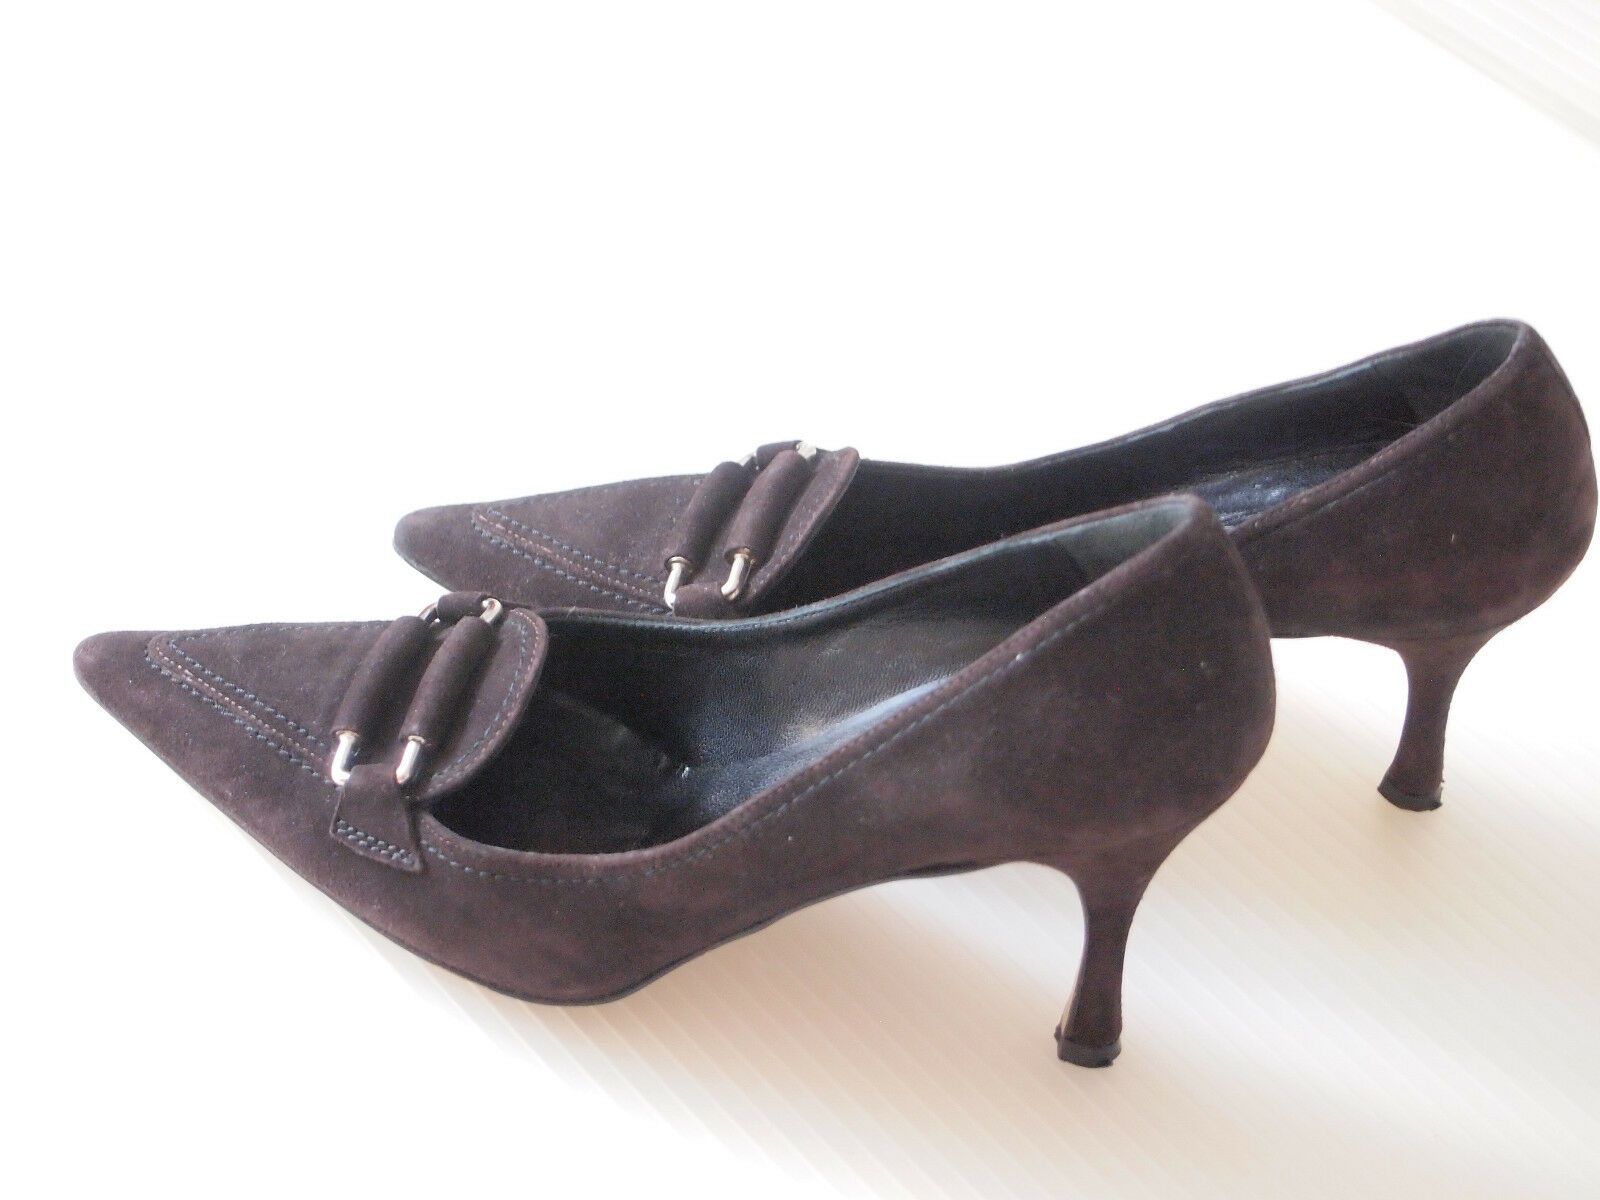 CLAUDIA CLAUDIA CLAUDIA CUITI, MADE IN ITALY Brown Suede Leather High Heels Pumps, Size 7 M 421bde